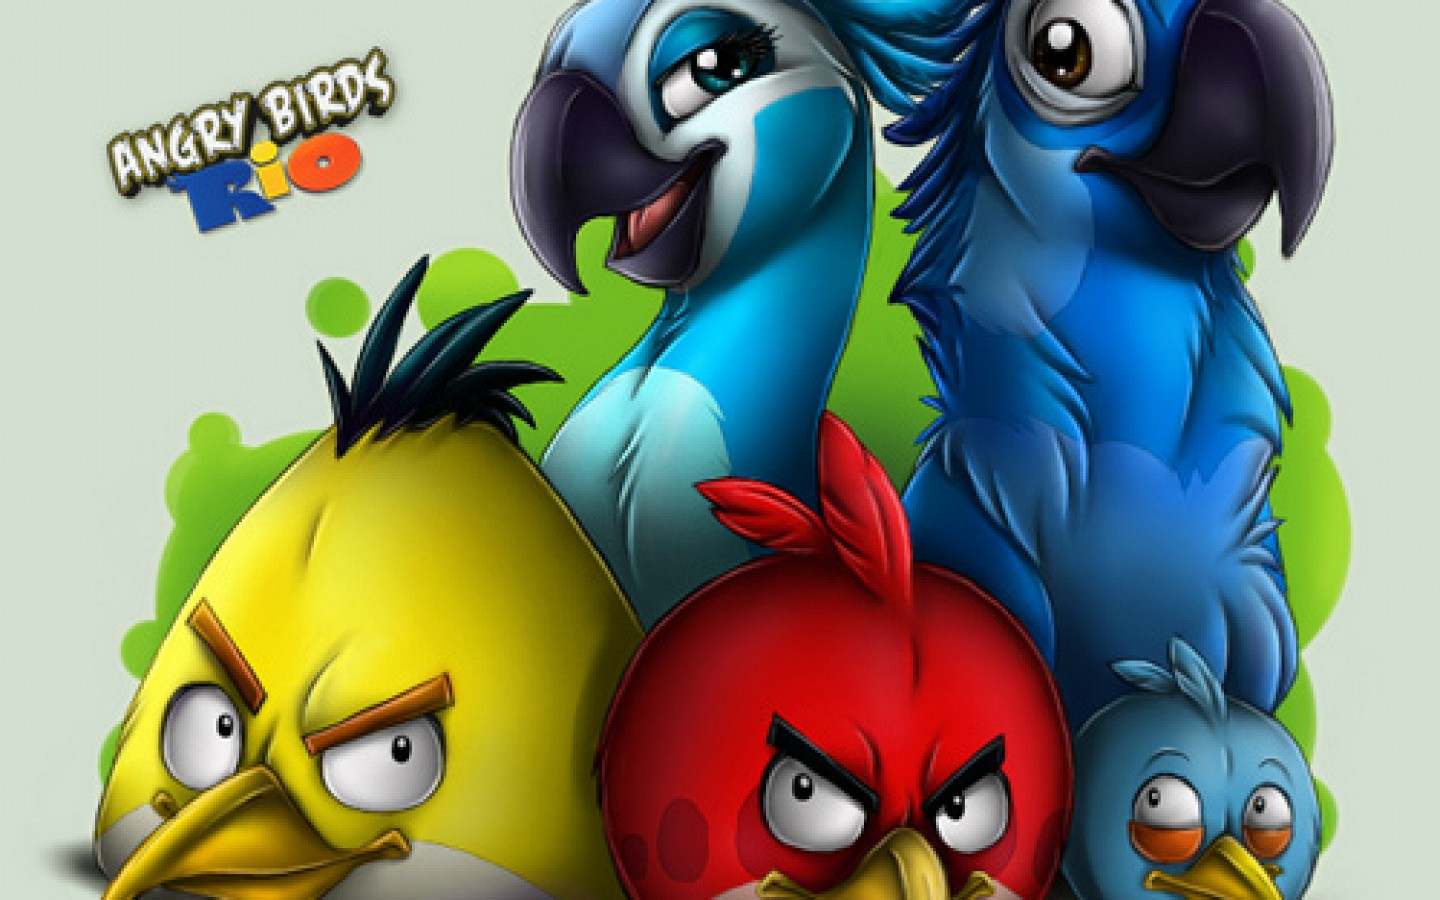 rizkydasbor: Angry Bird Rio Full Version 1.4.2